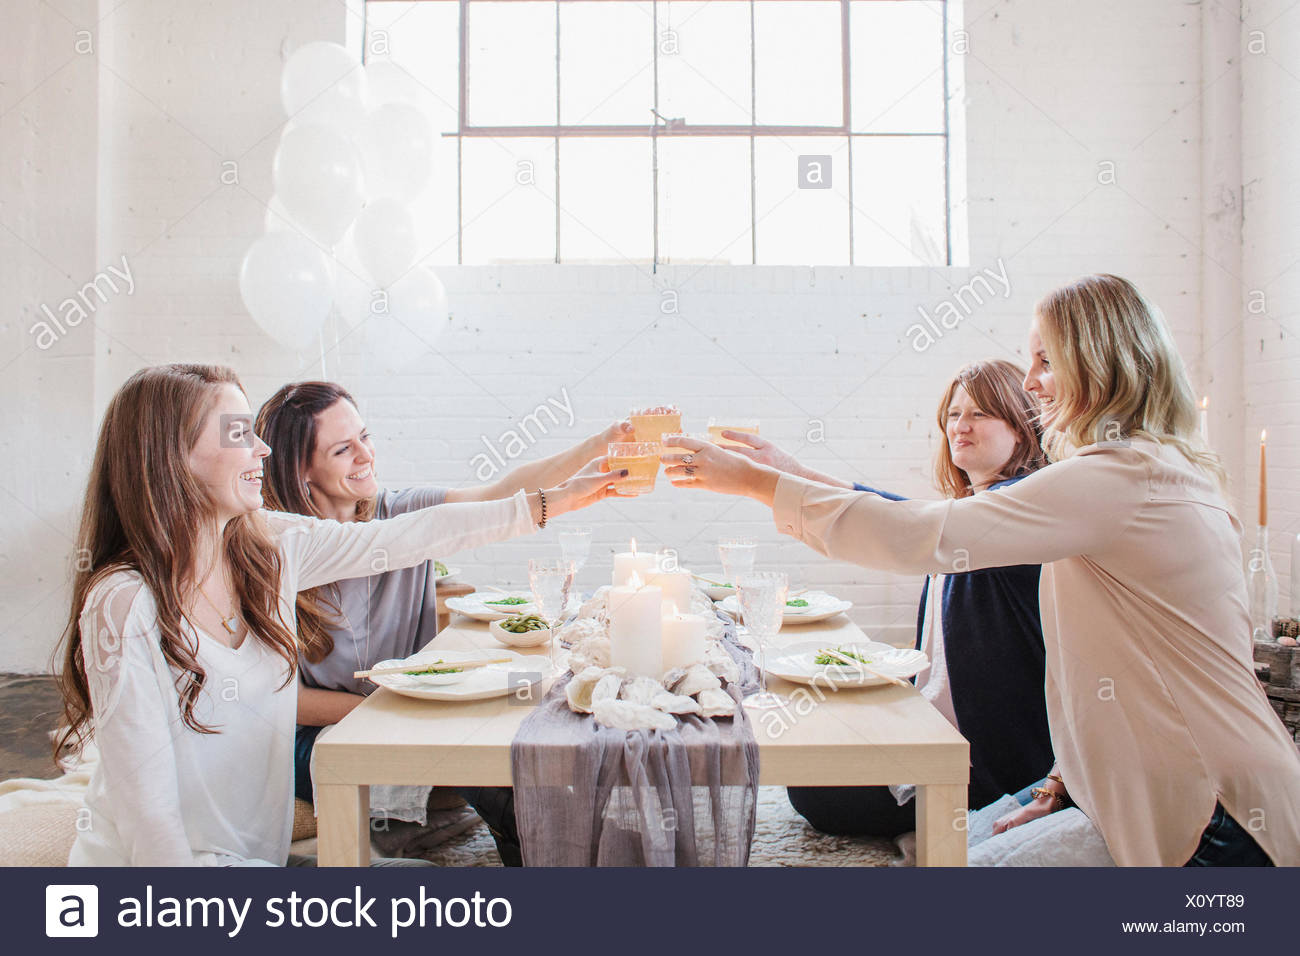 Four women seated at a low table, raising their glasses in a toast to each other. - Stock Image